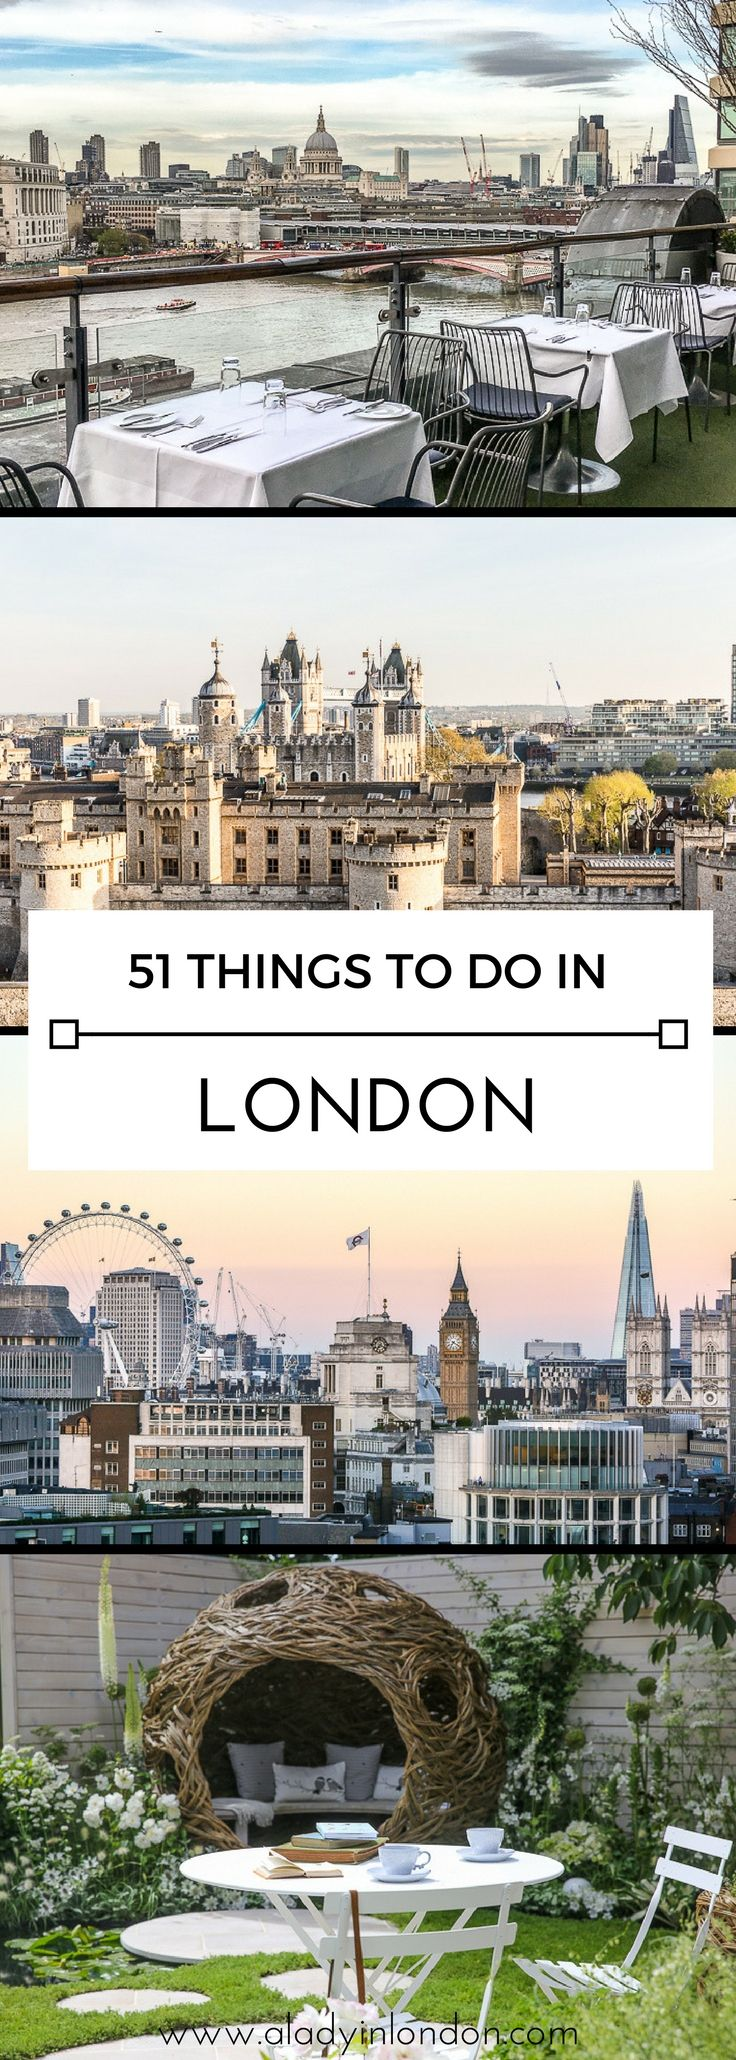 Things to Do in London in 2019 – 51 Events You Shouldn't Miss